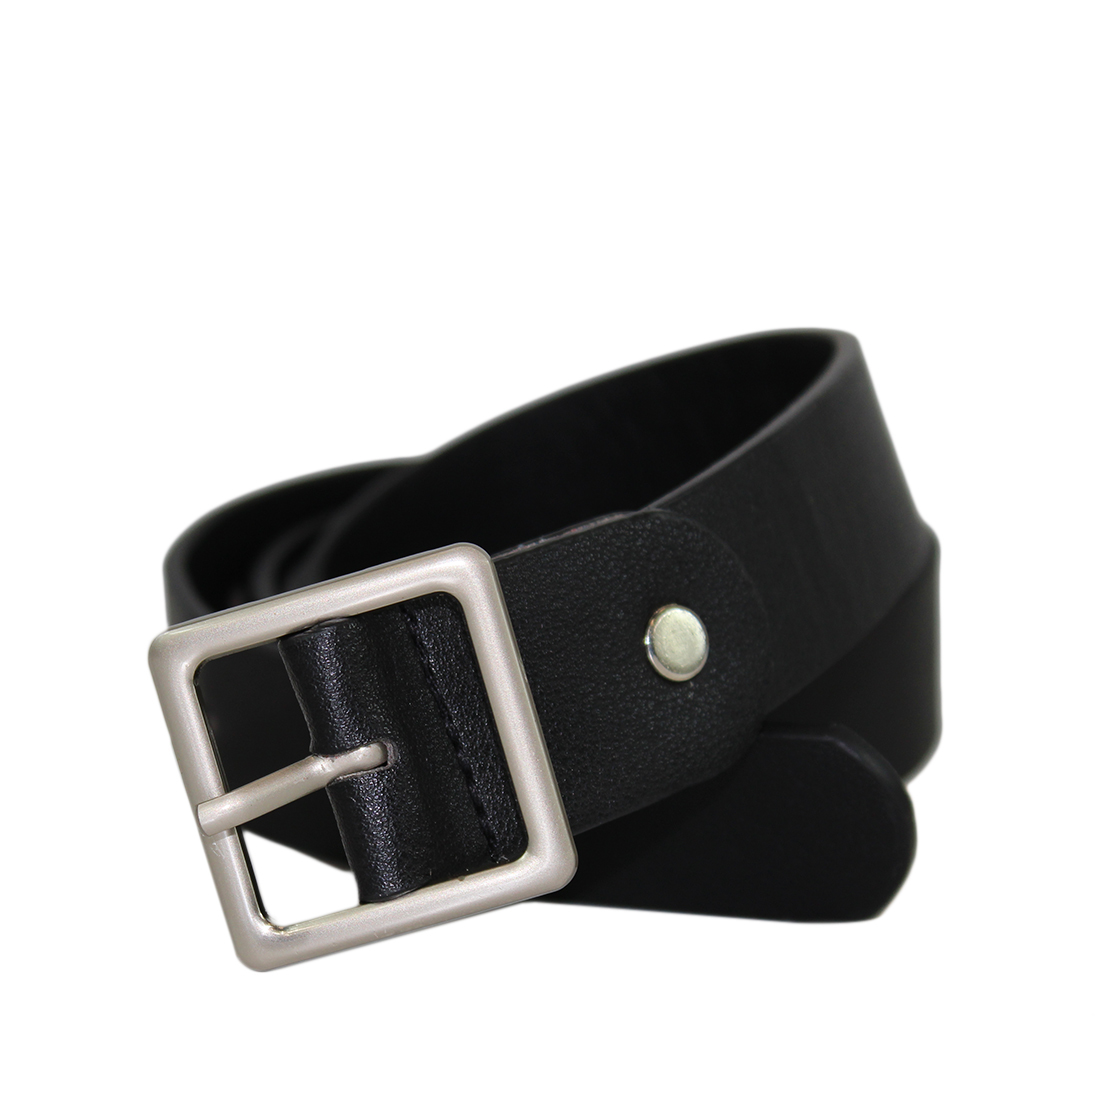 Plain Design with a square silver buckle